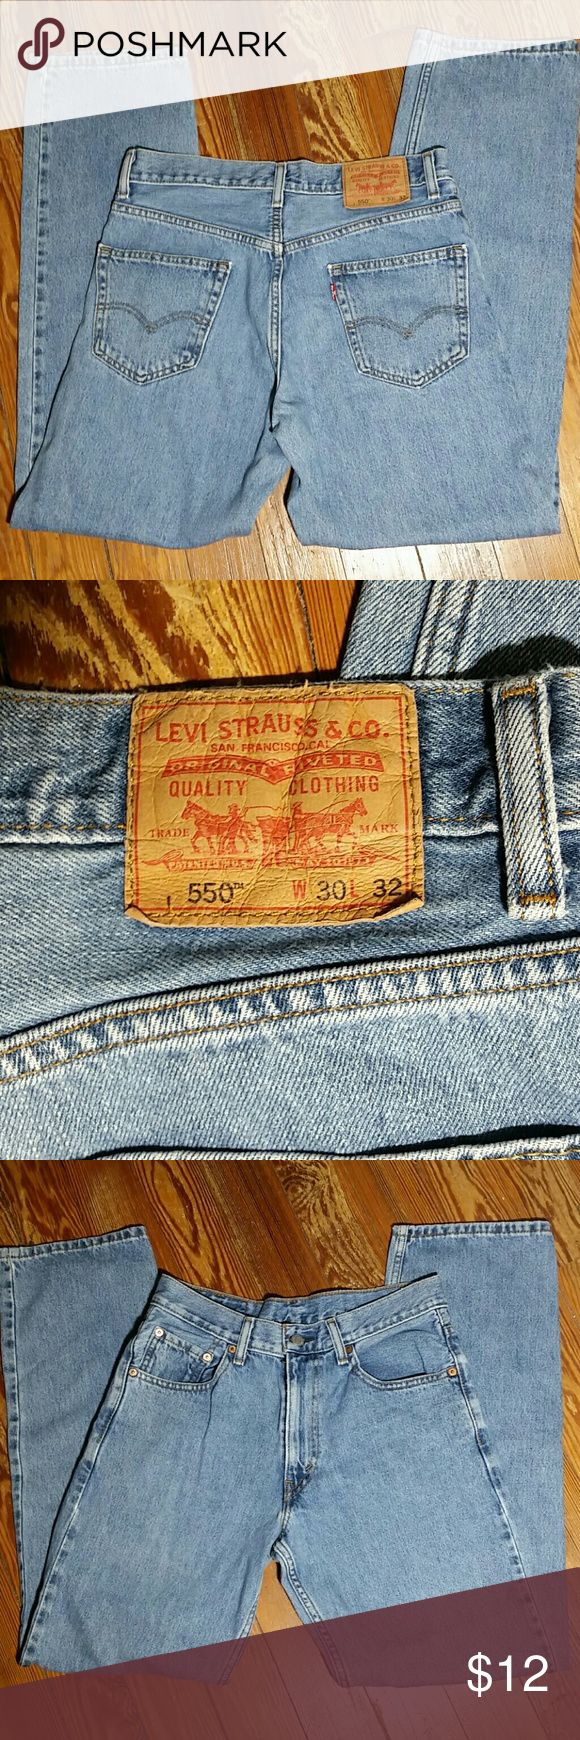 Levis 550 Relaxed Fit Jeans Levi's 550 Relaxed Fit Jeans Levi's Jeans Relaxed